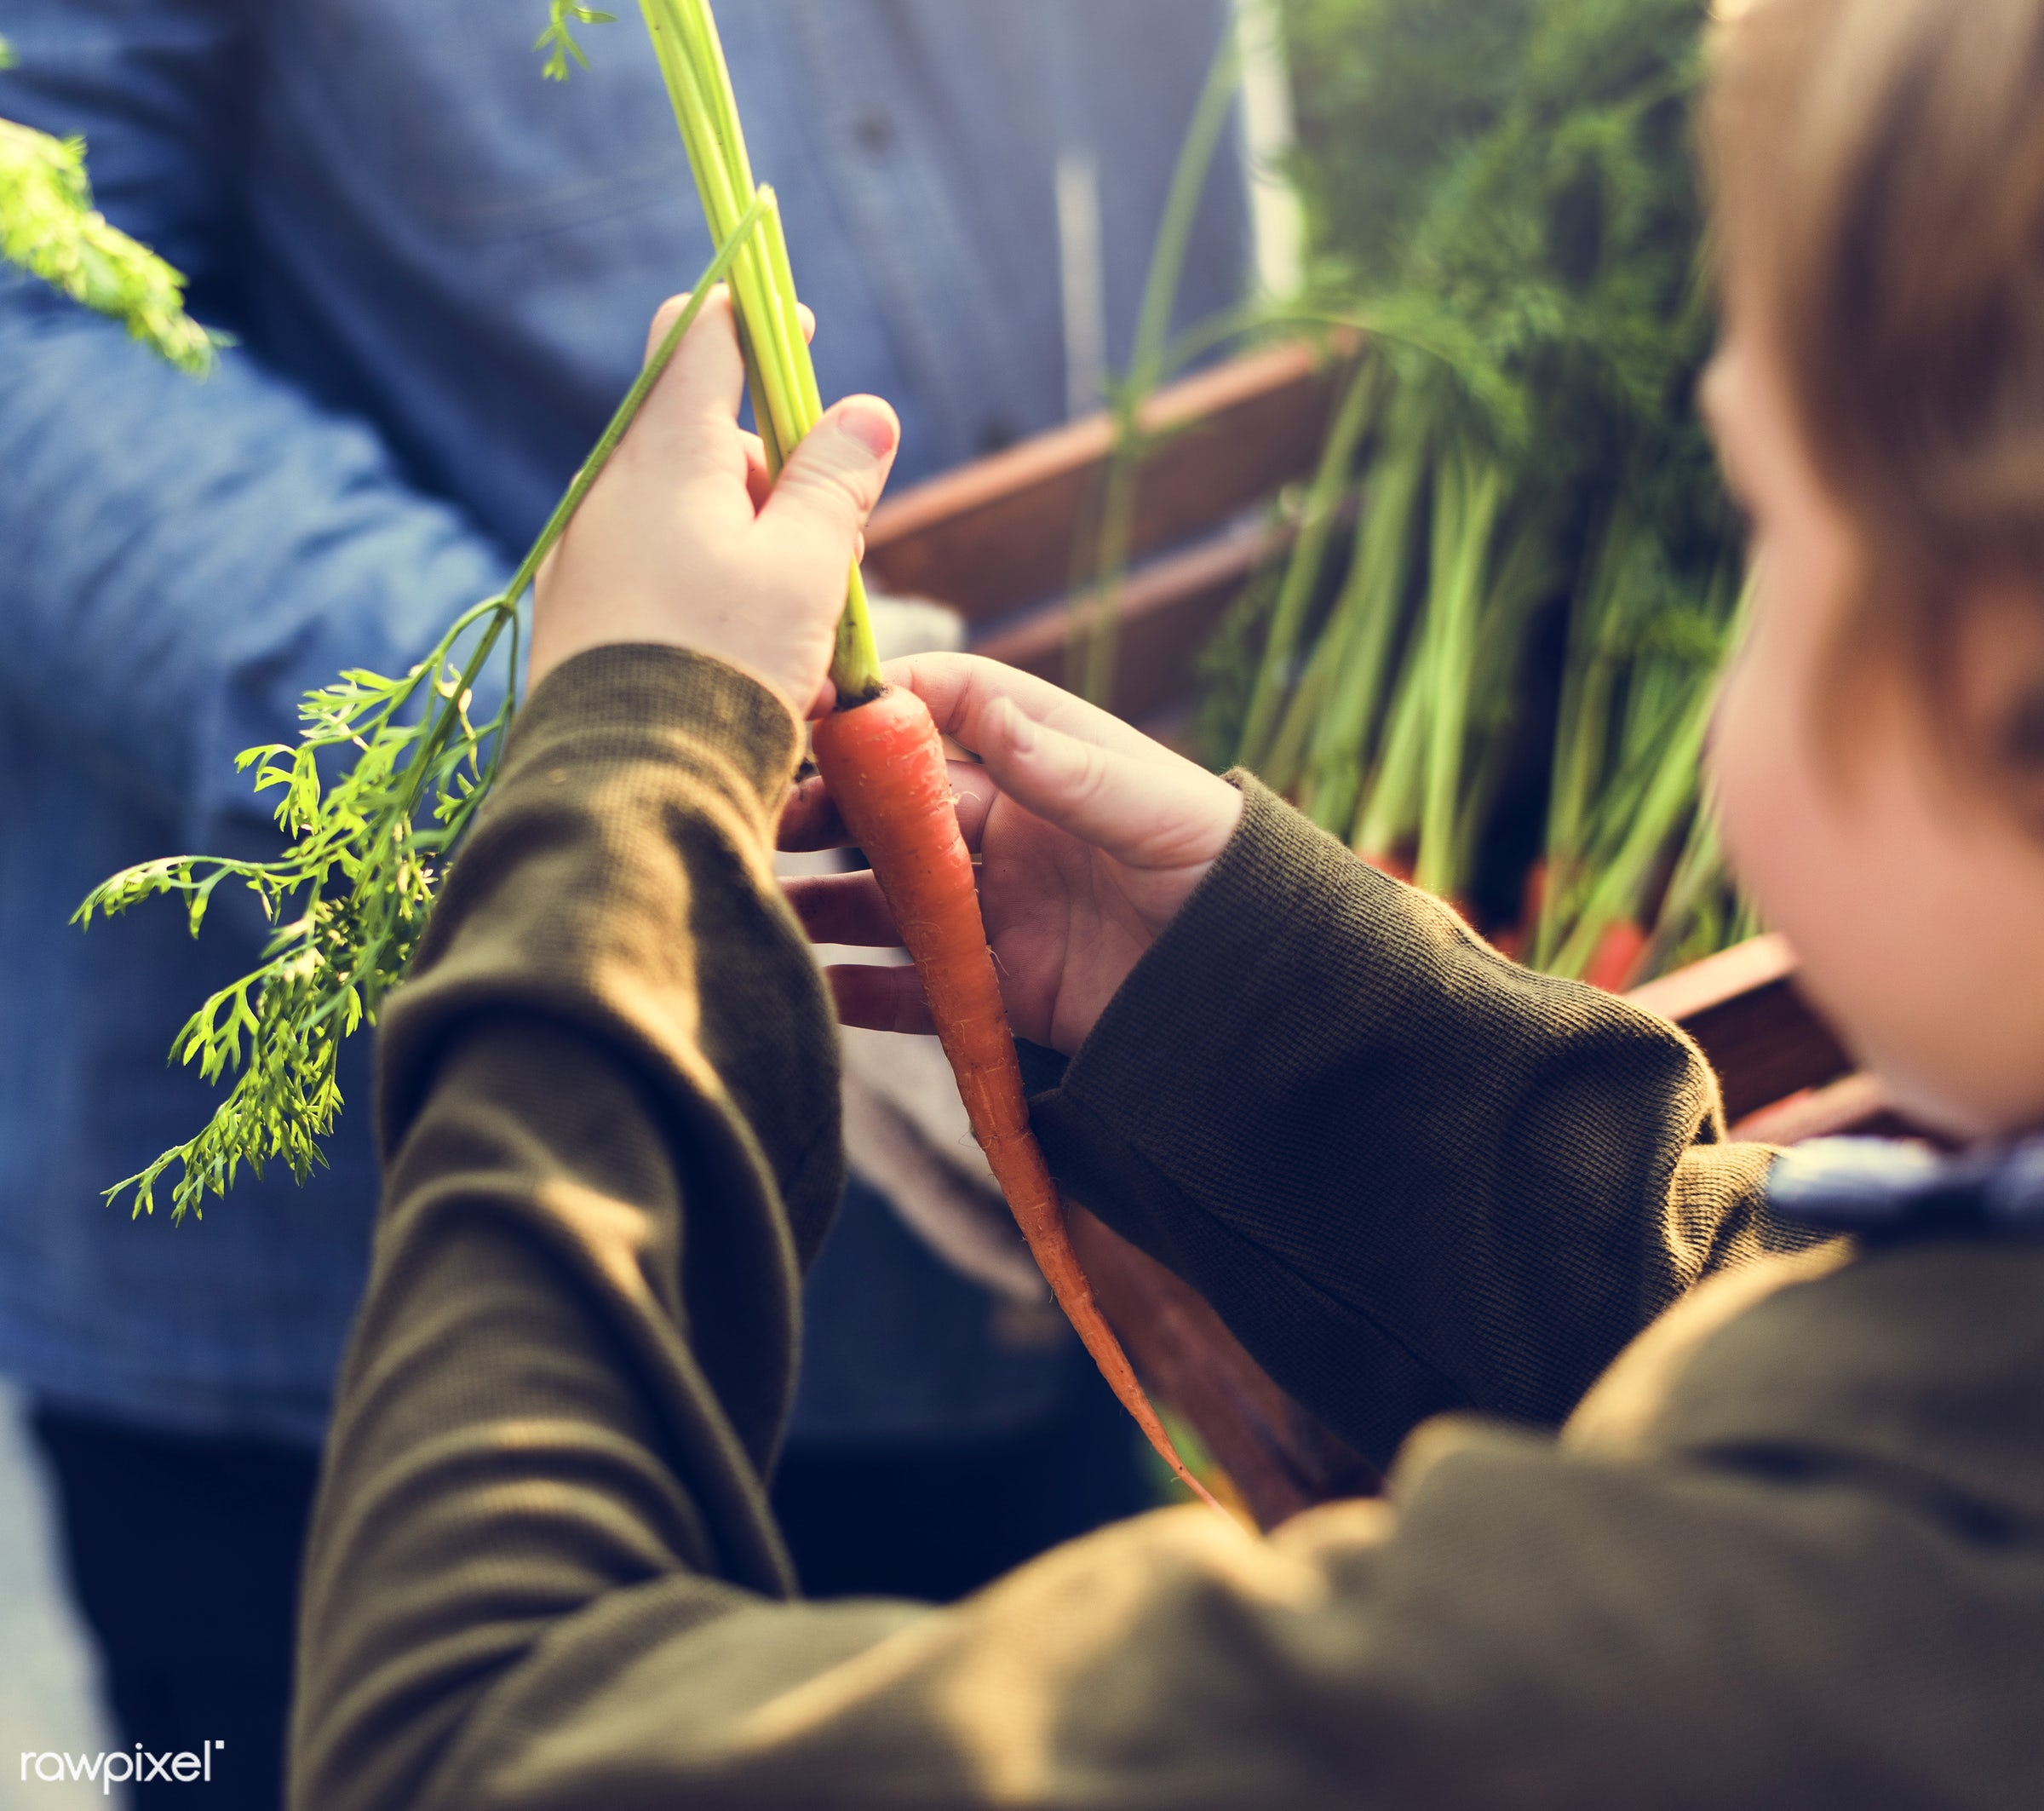 person, leaves, people, farmer, nature, lifestyle, ingredient, dirt, hold, agriculture, season, planting, kids, present,...